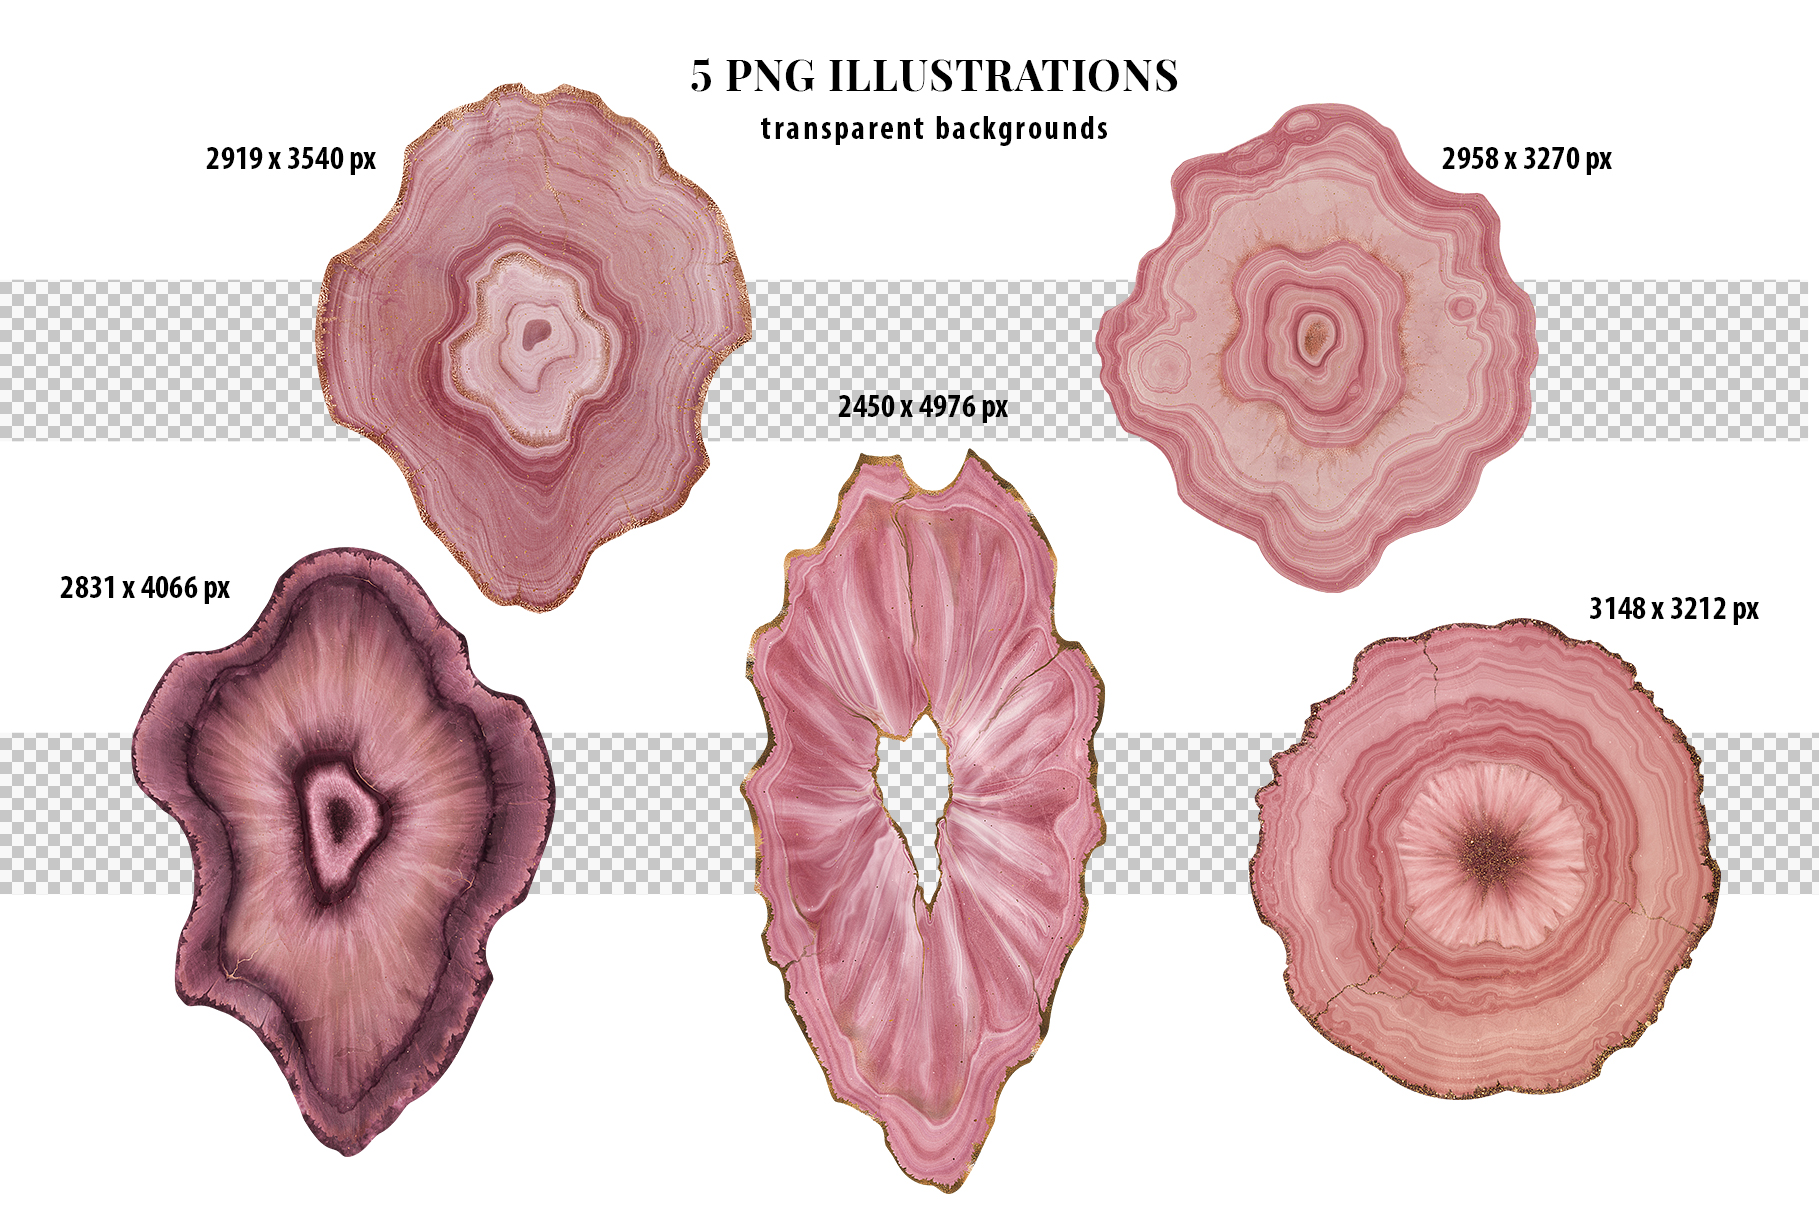 Pink Agate Illustrations, Textures & Patterns example image 12